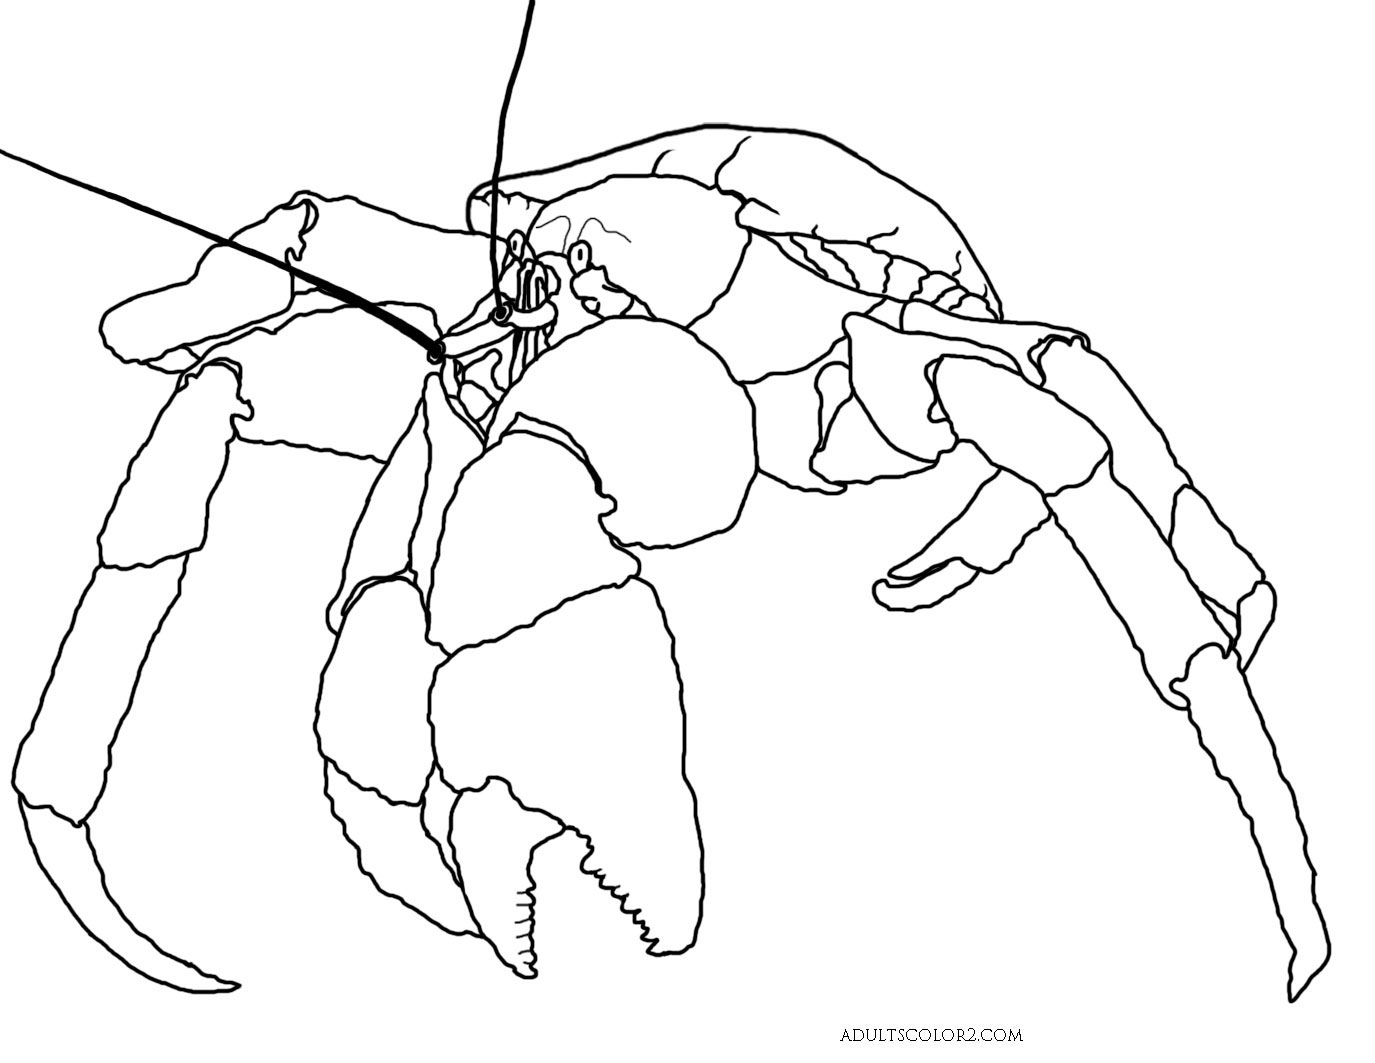 Plain coconut crab drawing.